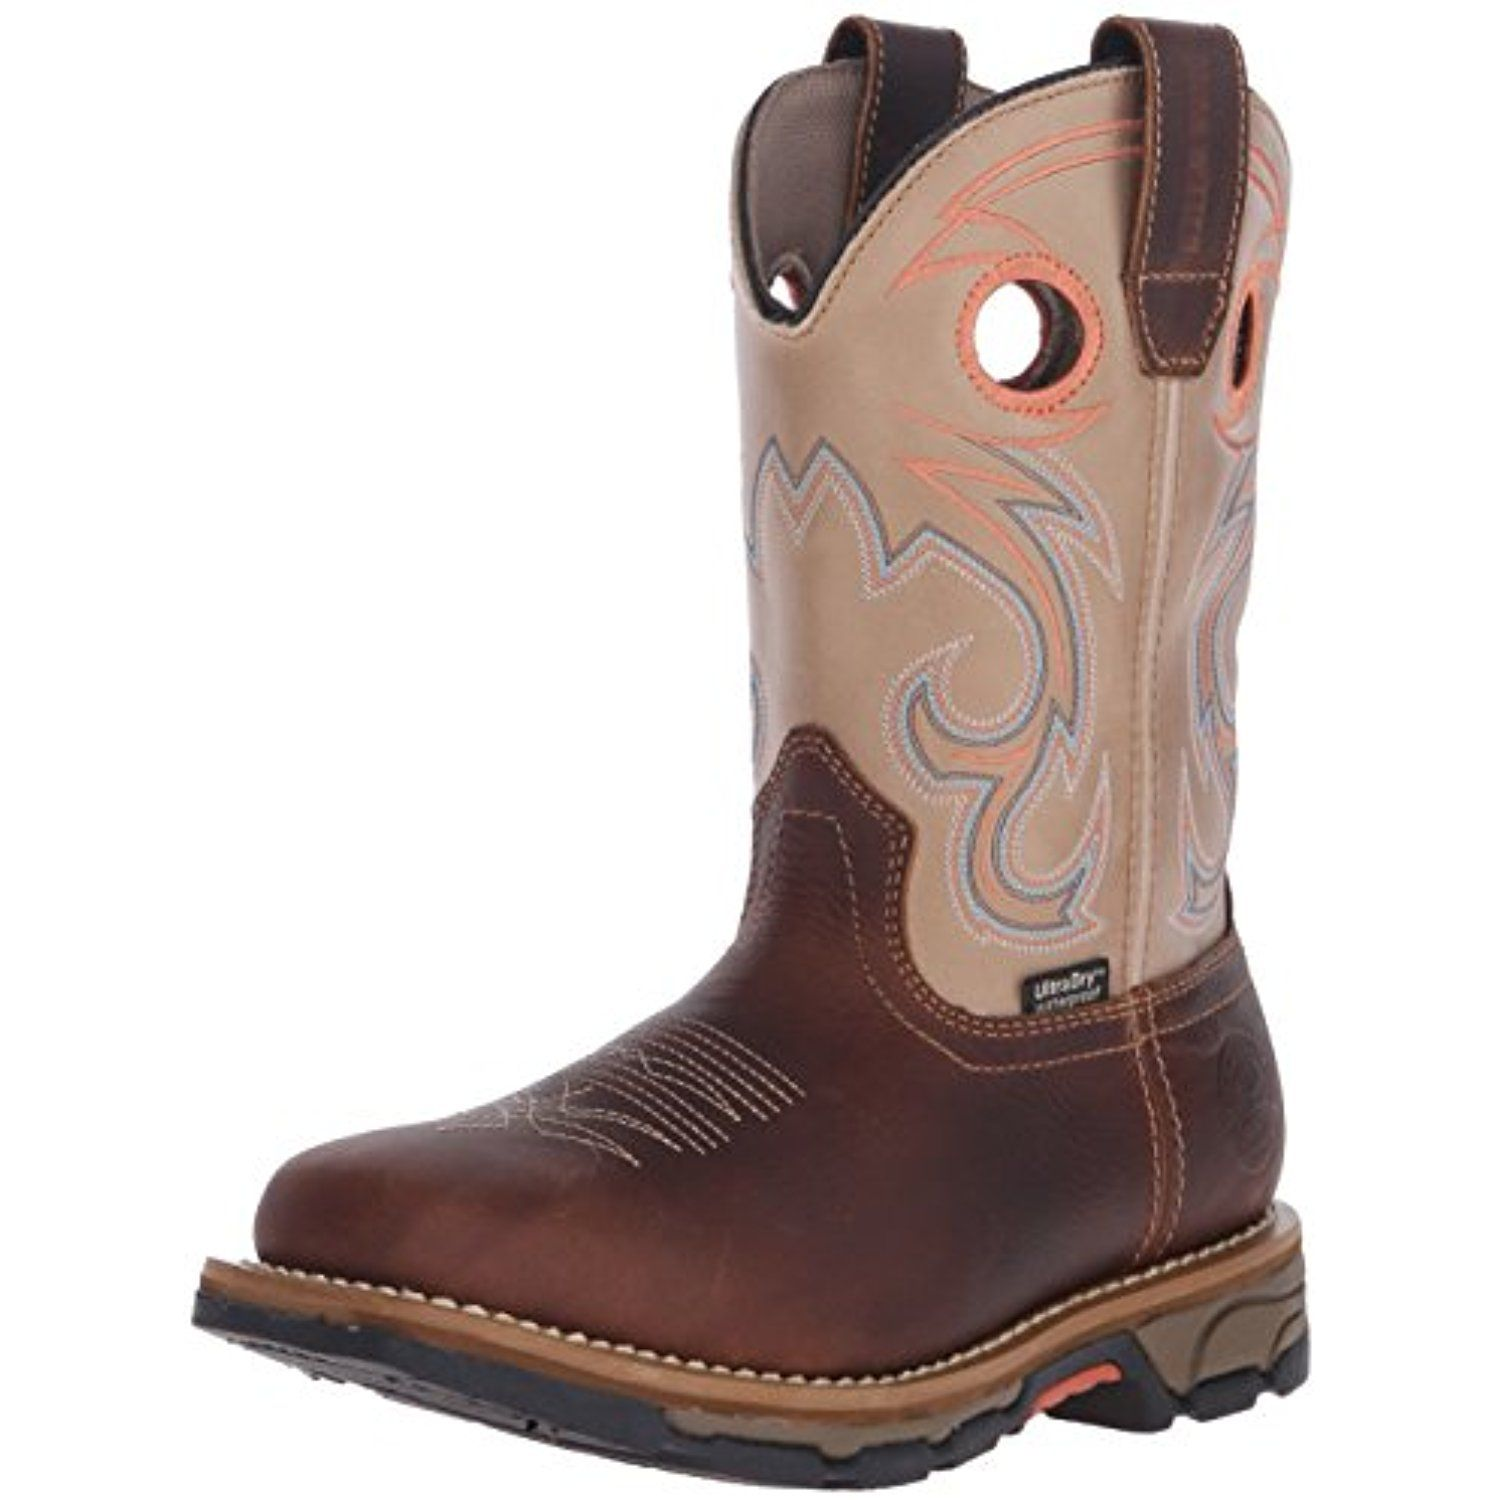 Irish setter · Work Women's Marshall 9